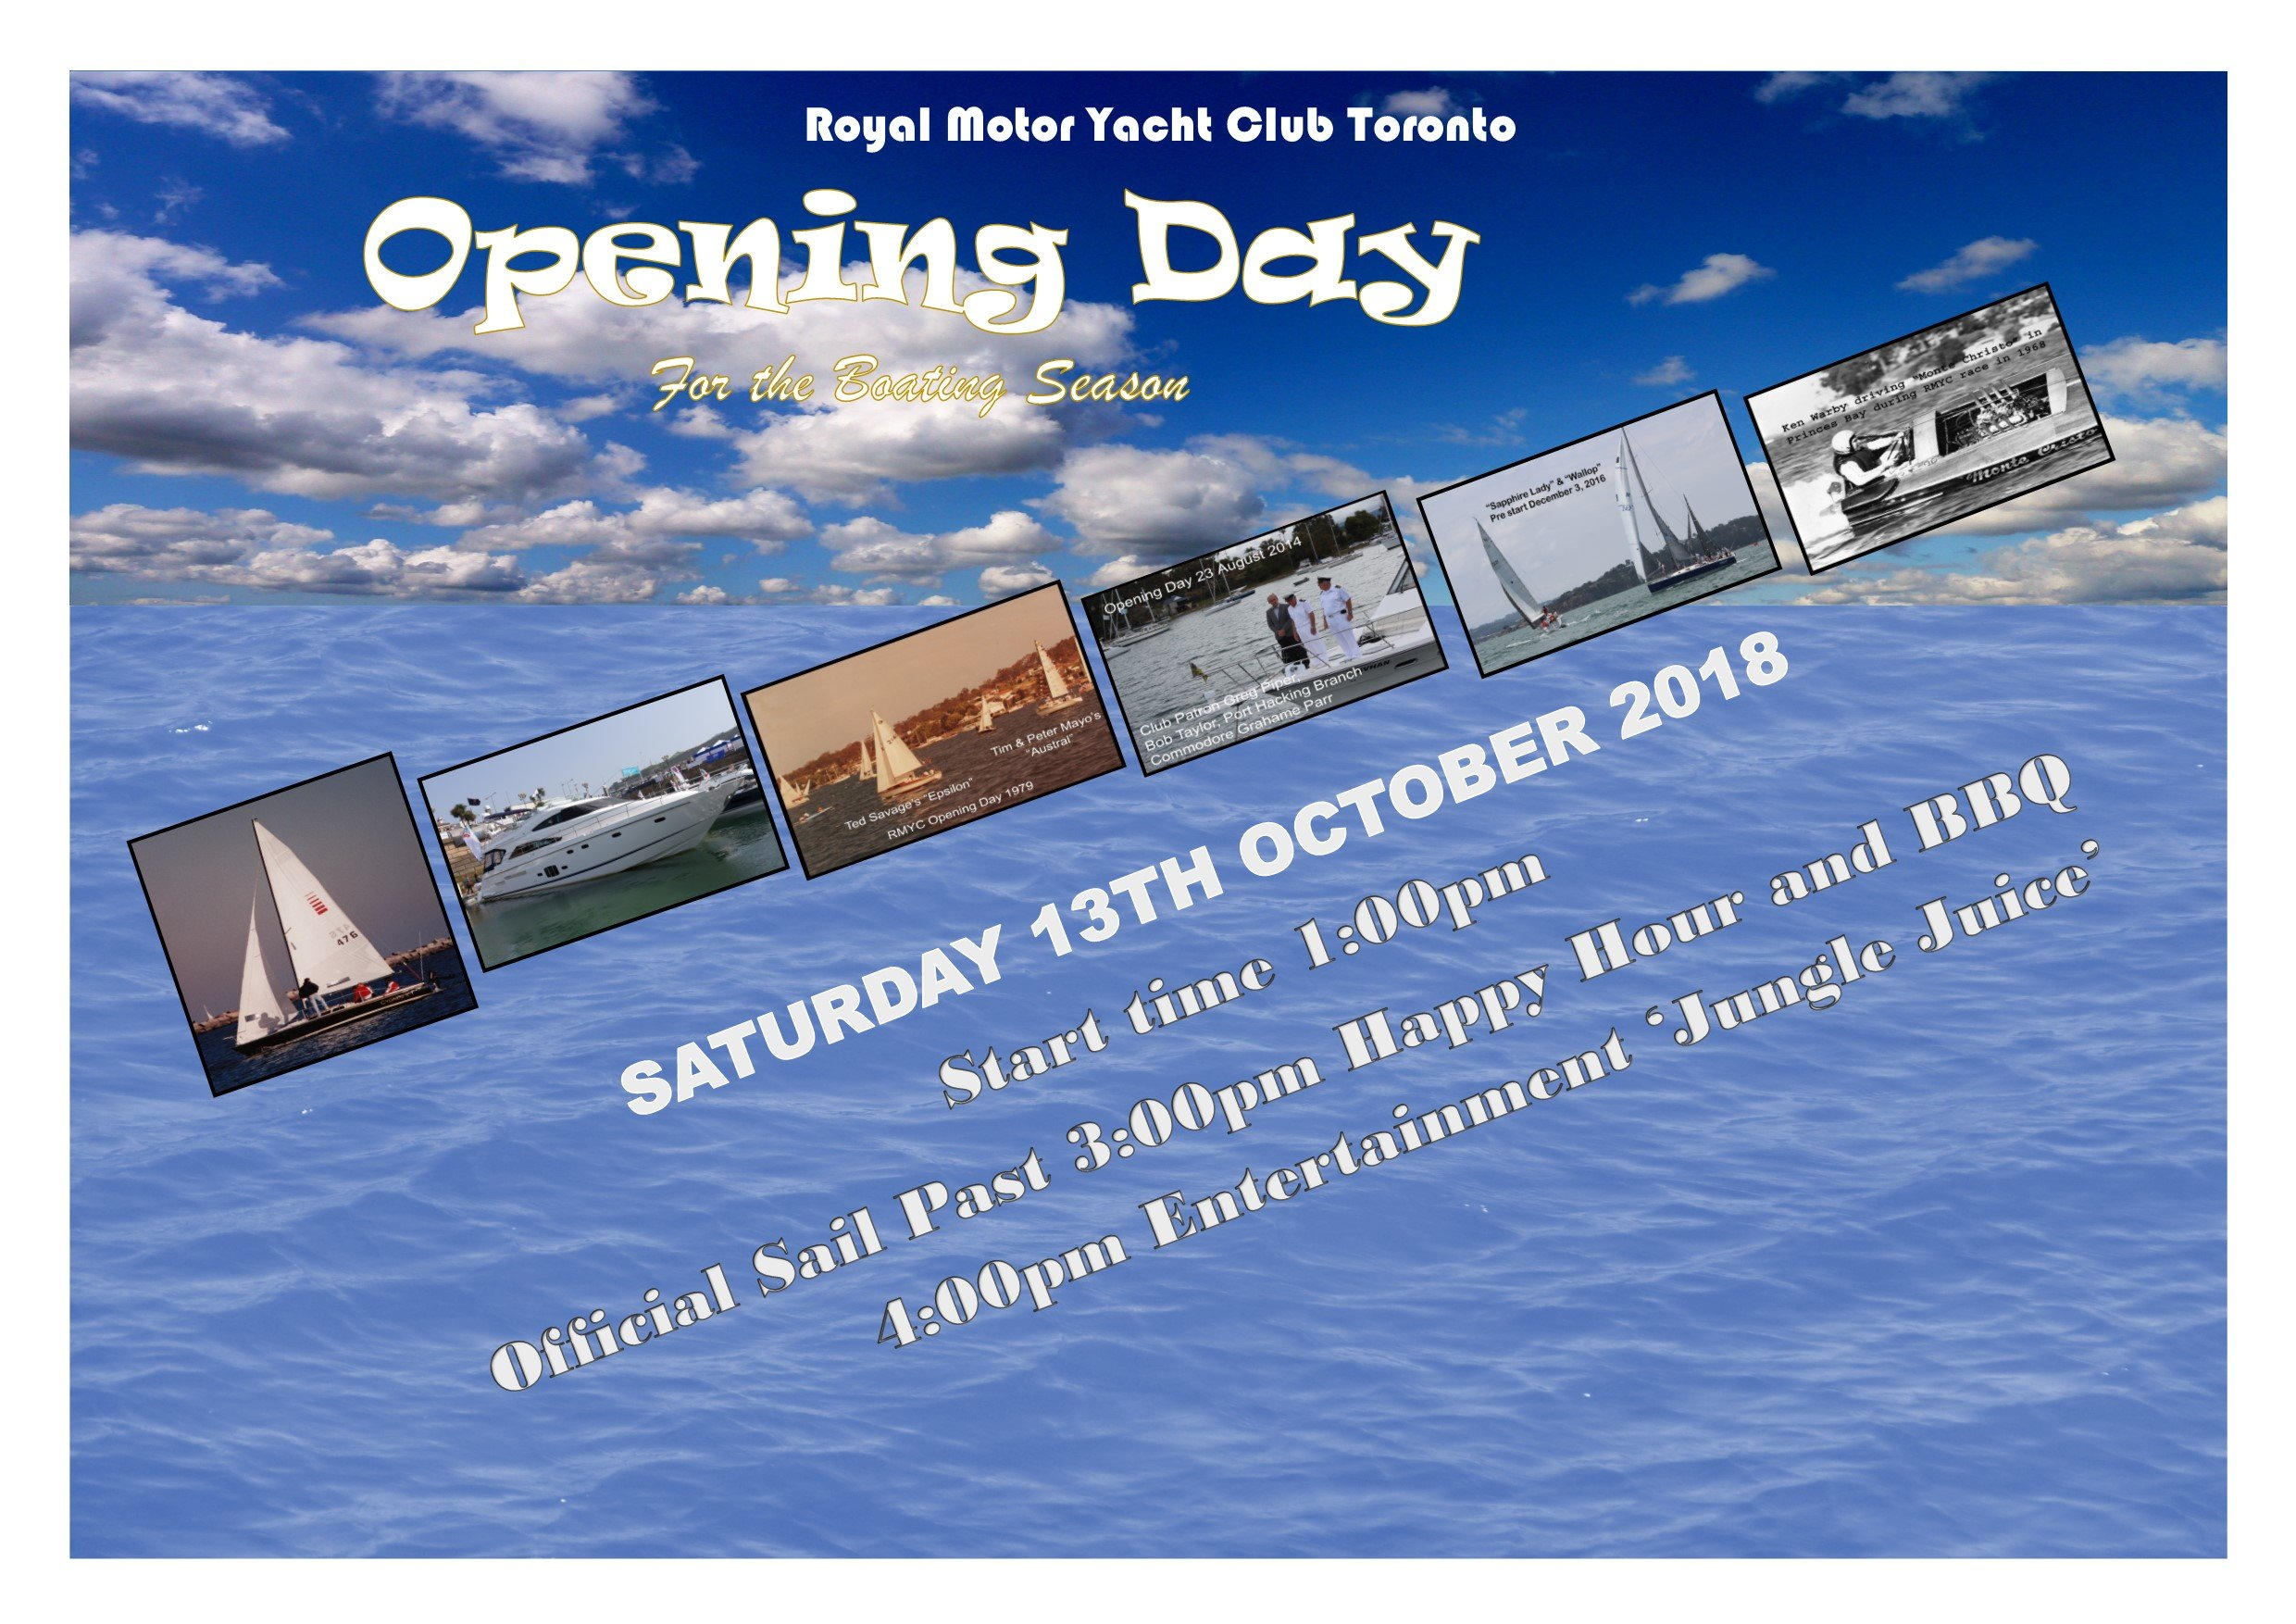 Saturday 13th October 2018 Opening Day for 2018-19 Boating Season Starting at 1pm  Sail Past 3pm Happy Hour & BBQ 4pm Jungle Juice playing from 4pm